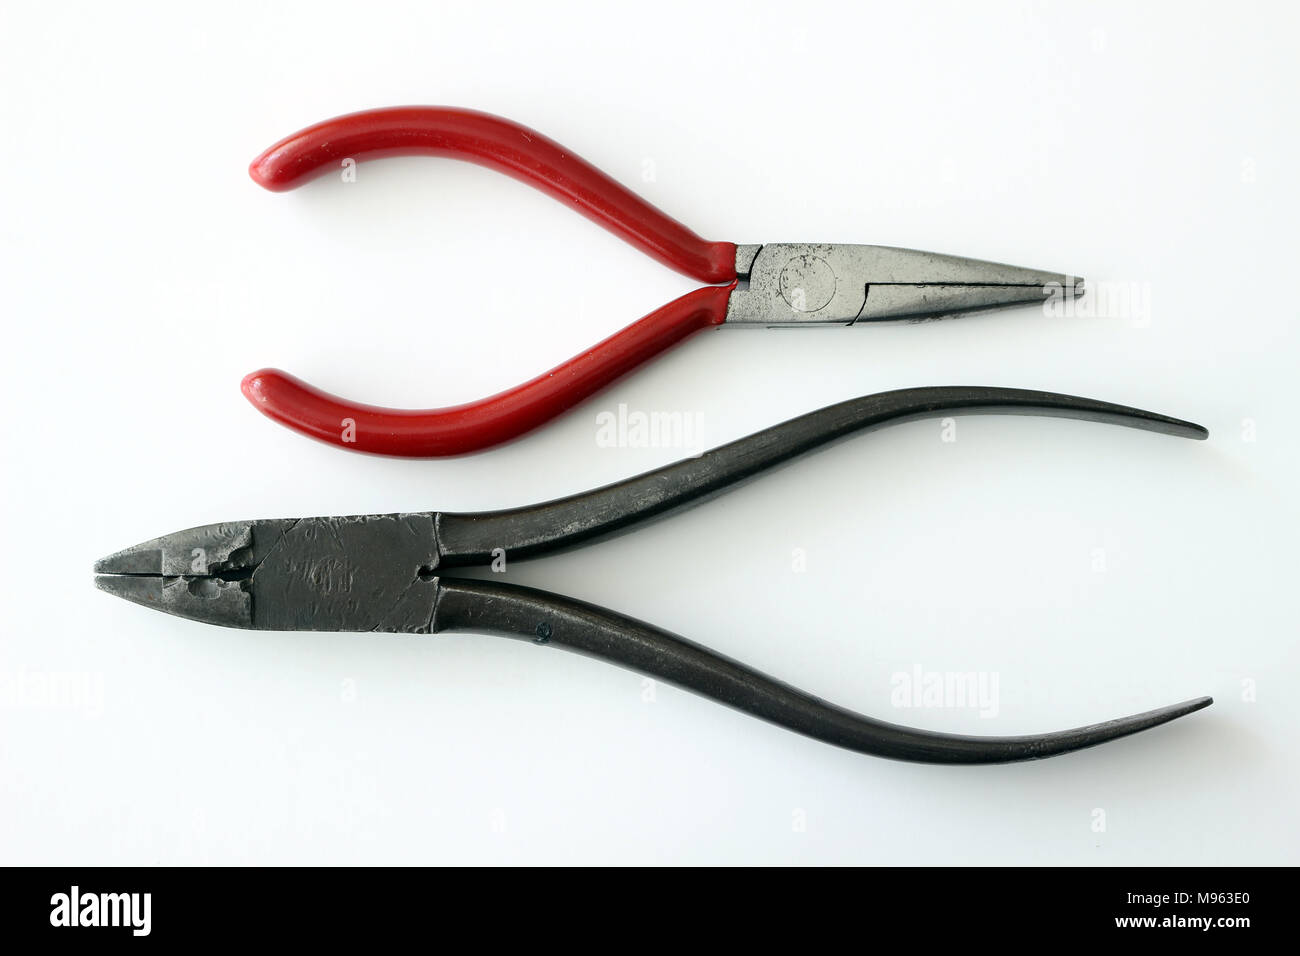 Flat nose and needle nose pliers Stock Photo